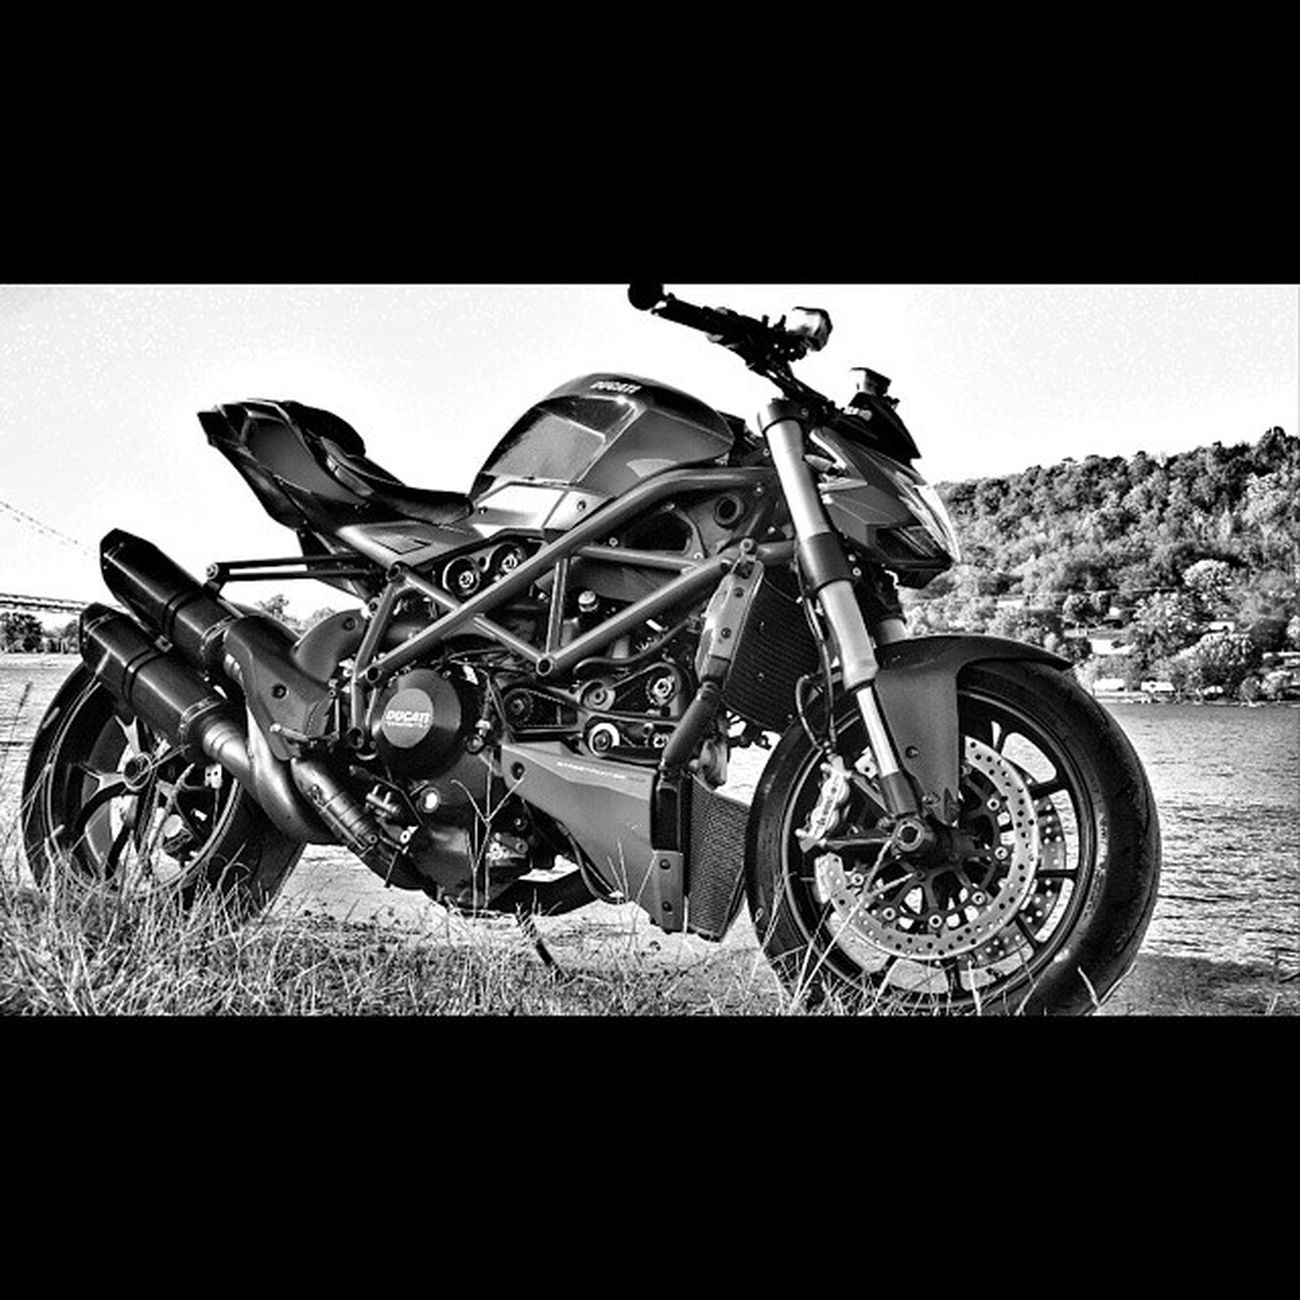 Ecstacy=sound of full throttle quickshifting a ducati up to redline. Ducati Ducatistreetfighter Bike Akrapovic bestsounds fallrides quickshifting redline 158sofar motorcycle